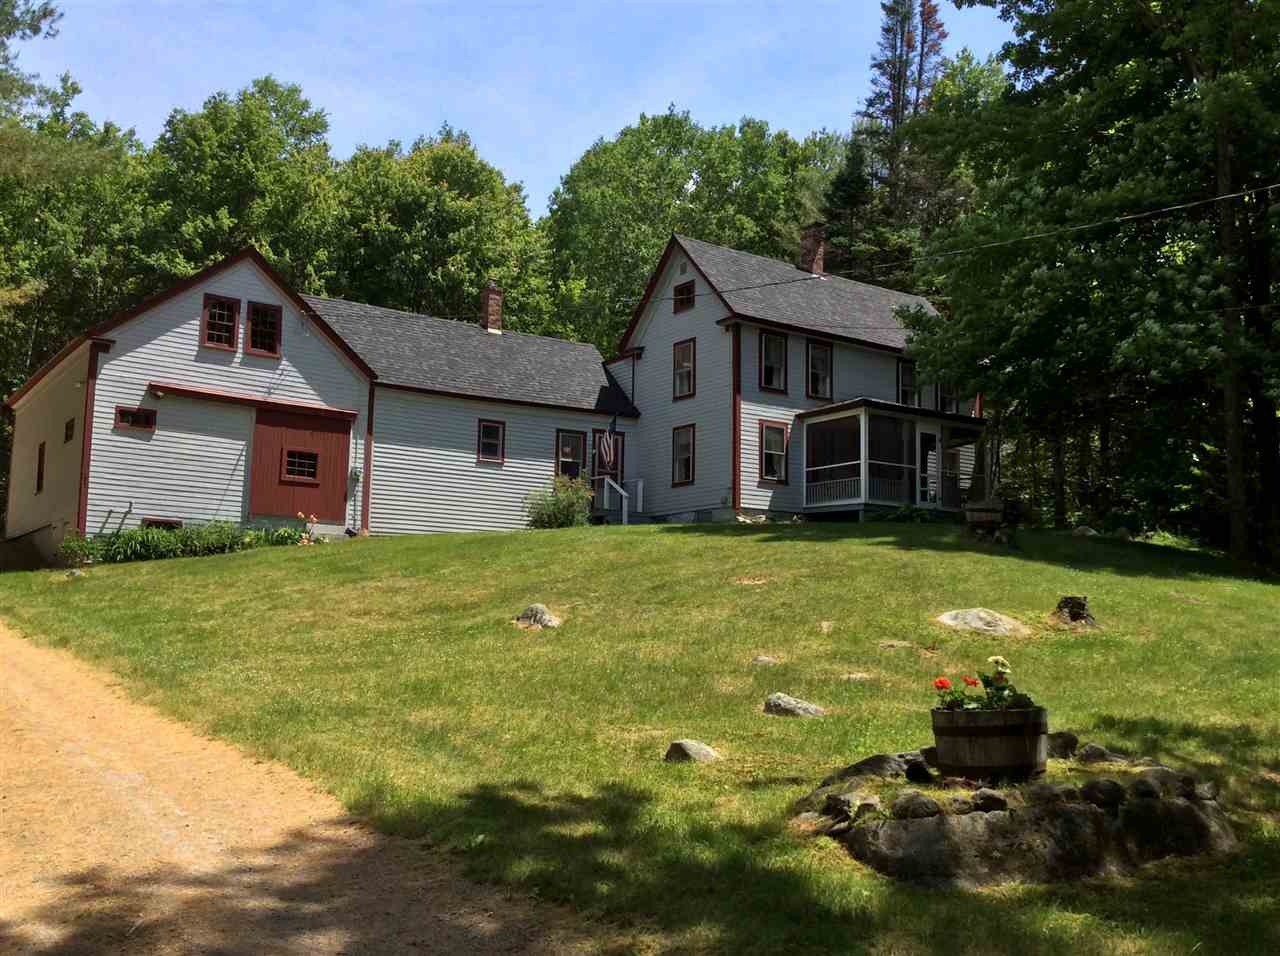 Village of Melvin Village in Town of Tuftonboro NH Home for sale $$229,000 $132 per sq.ft.